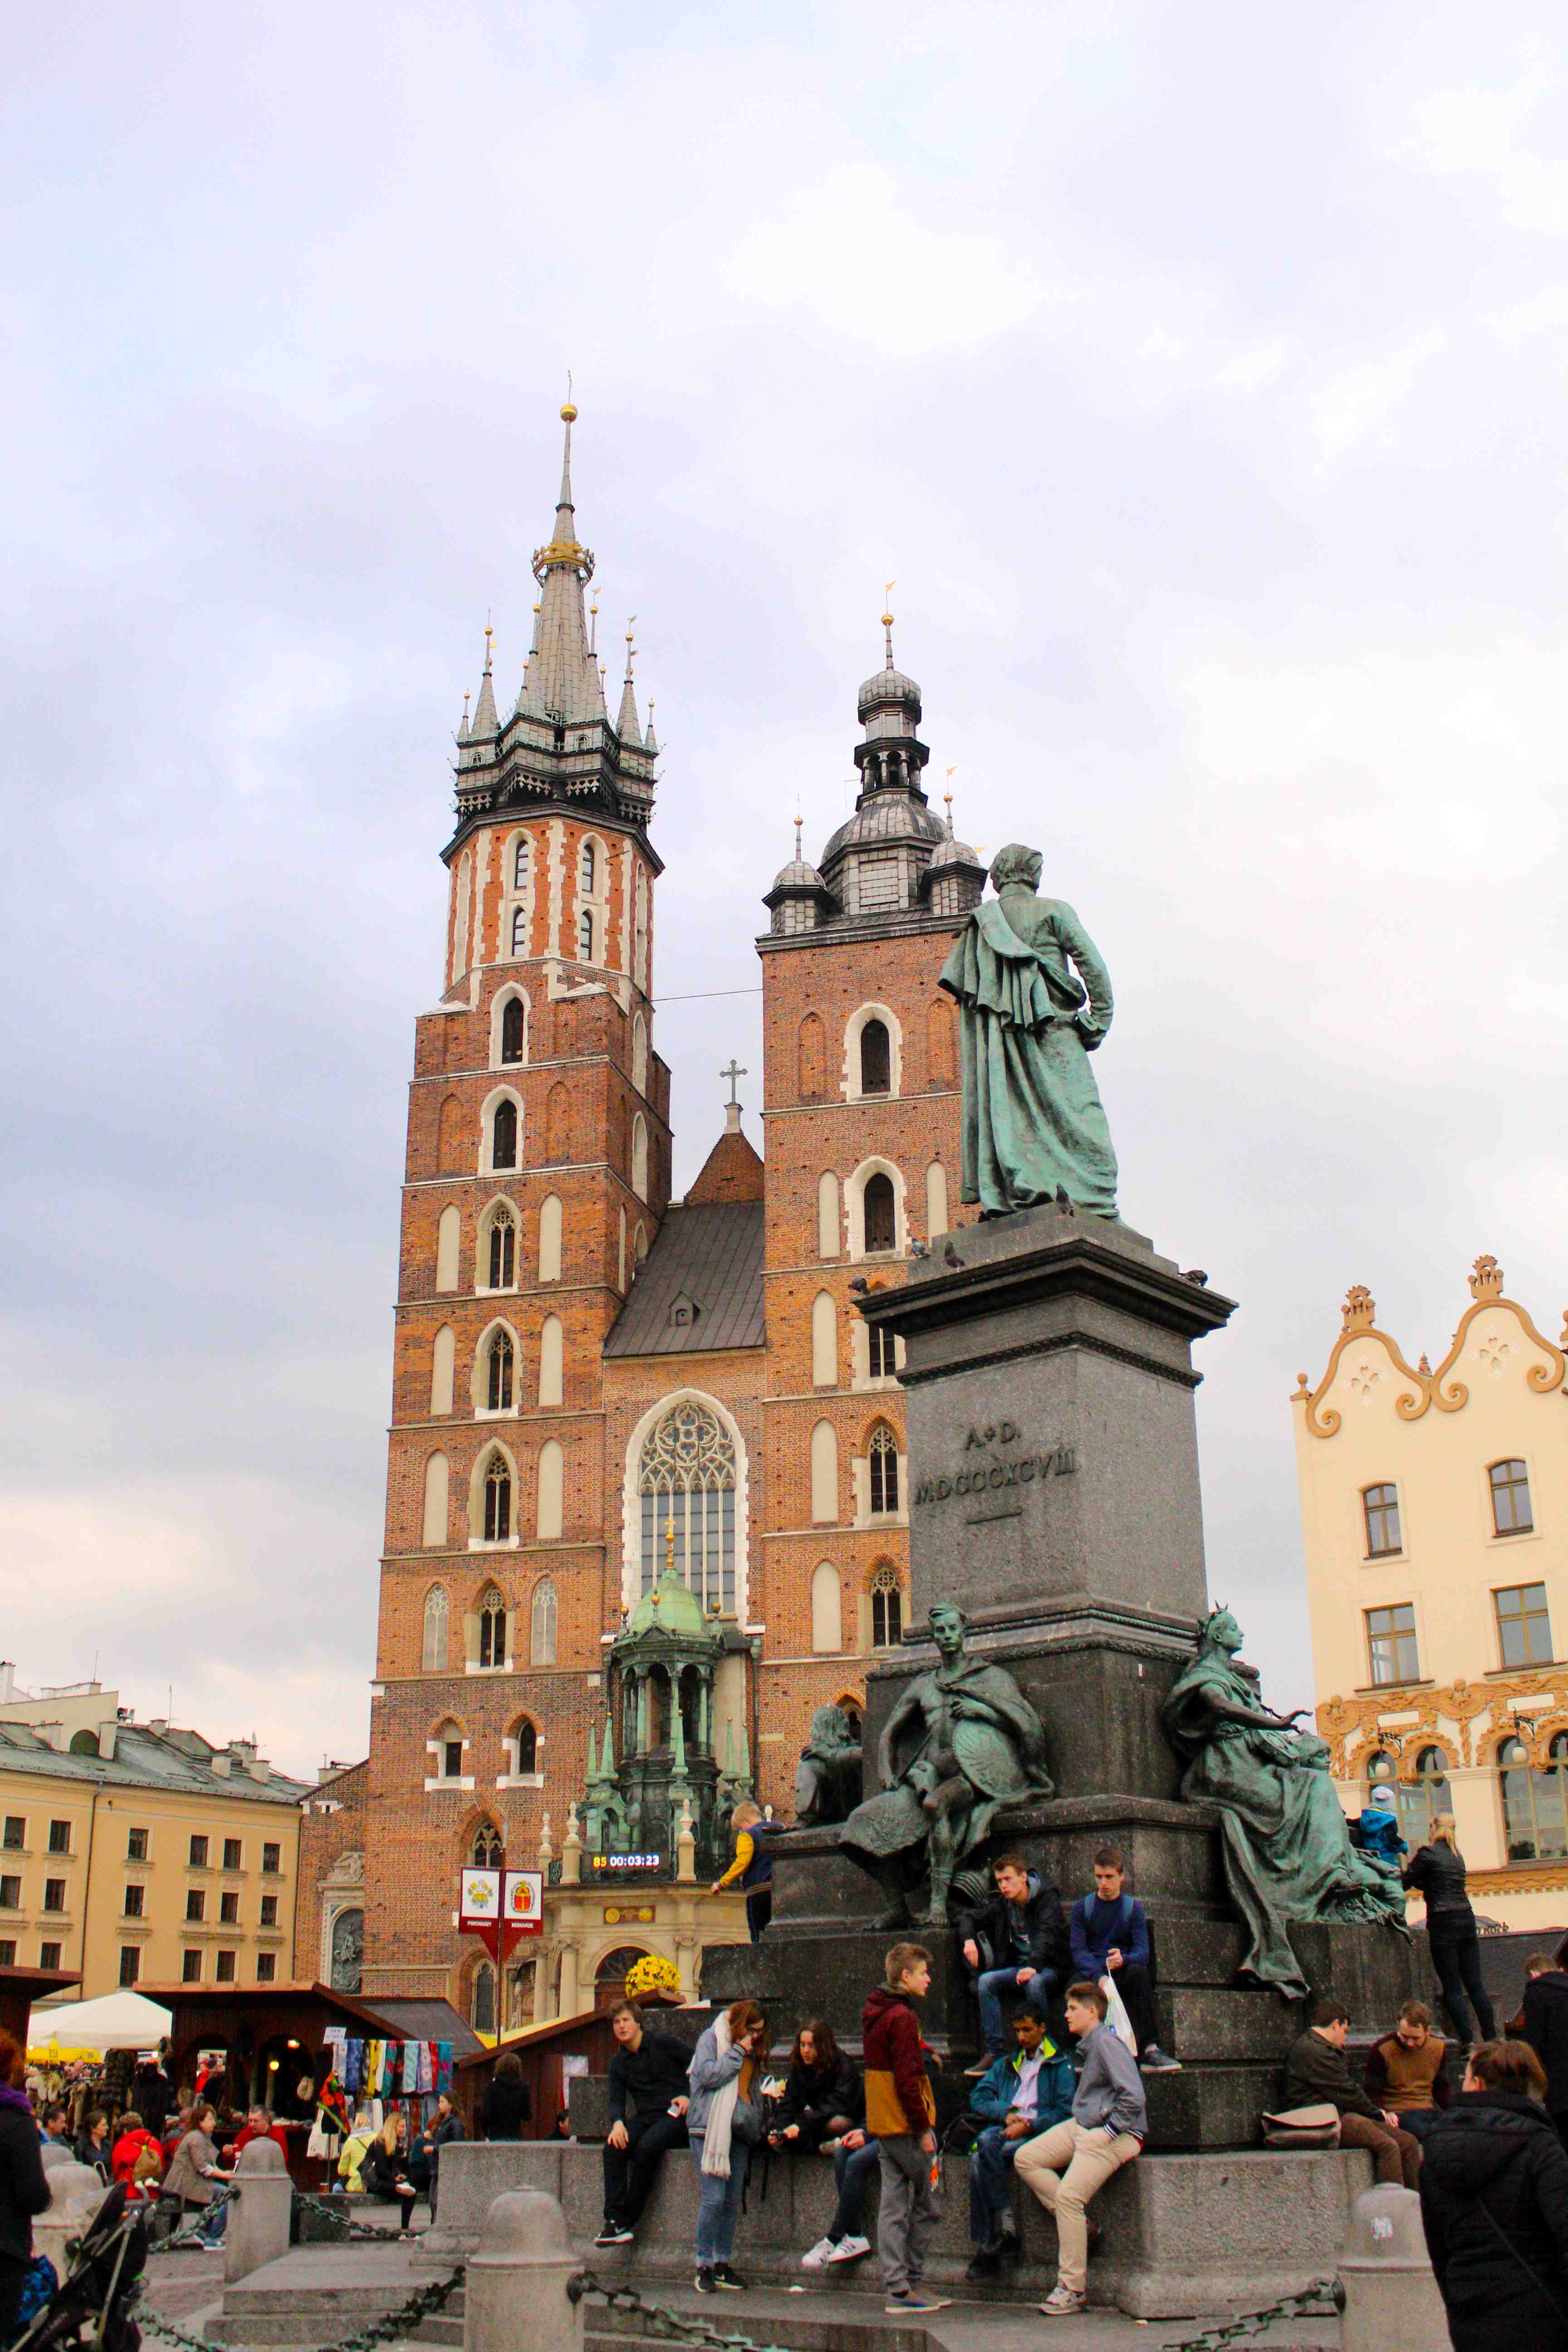 Krakow, Poland: Is It All Just Hype?